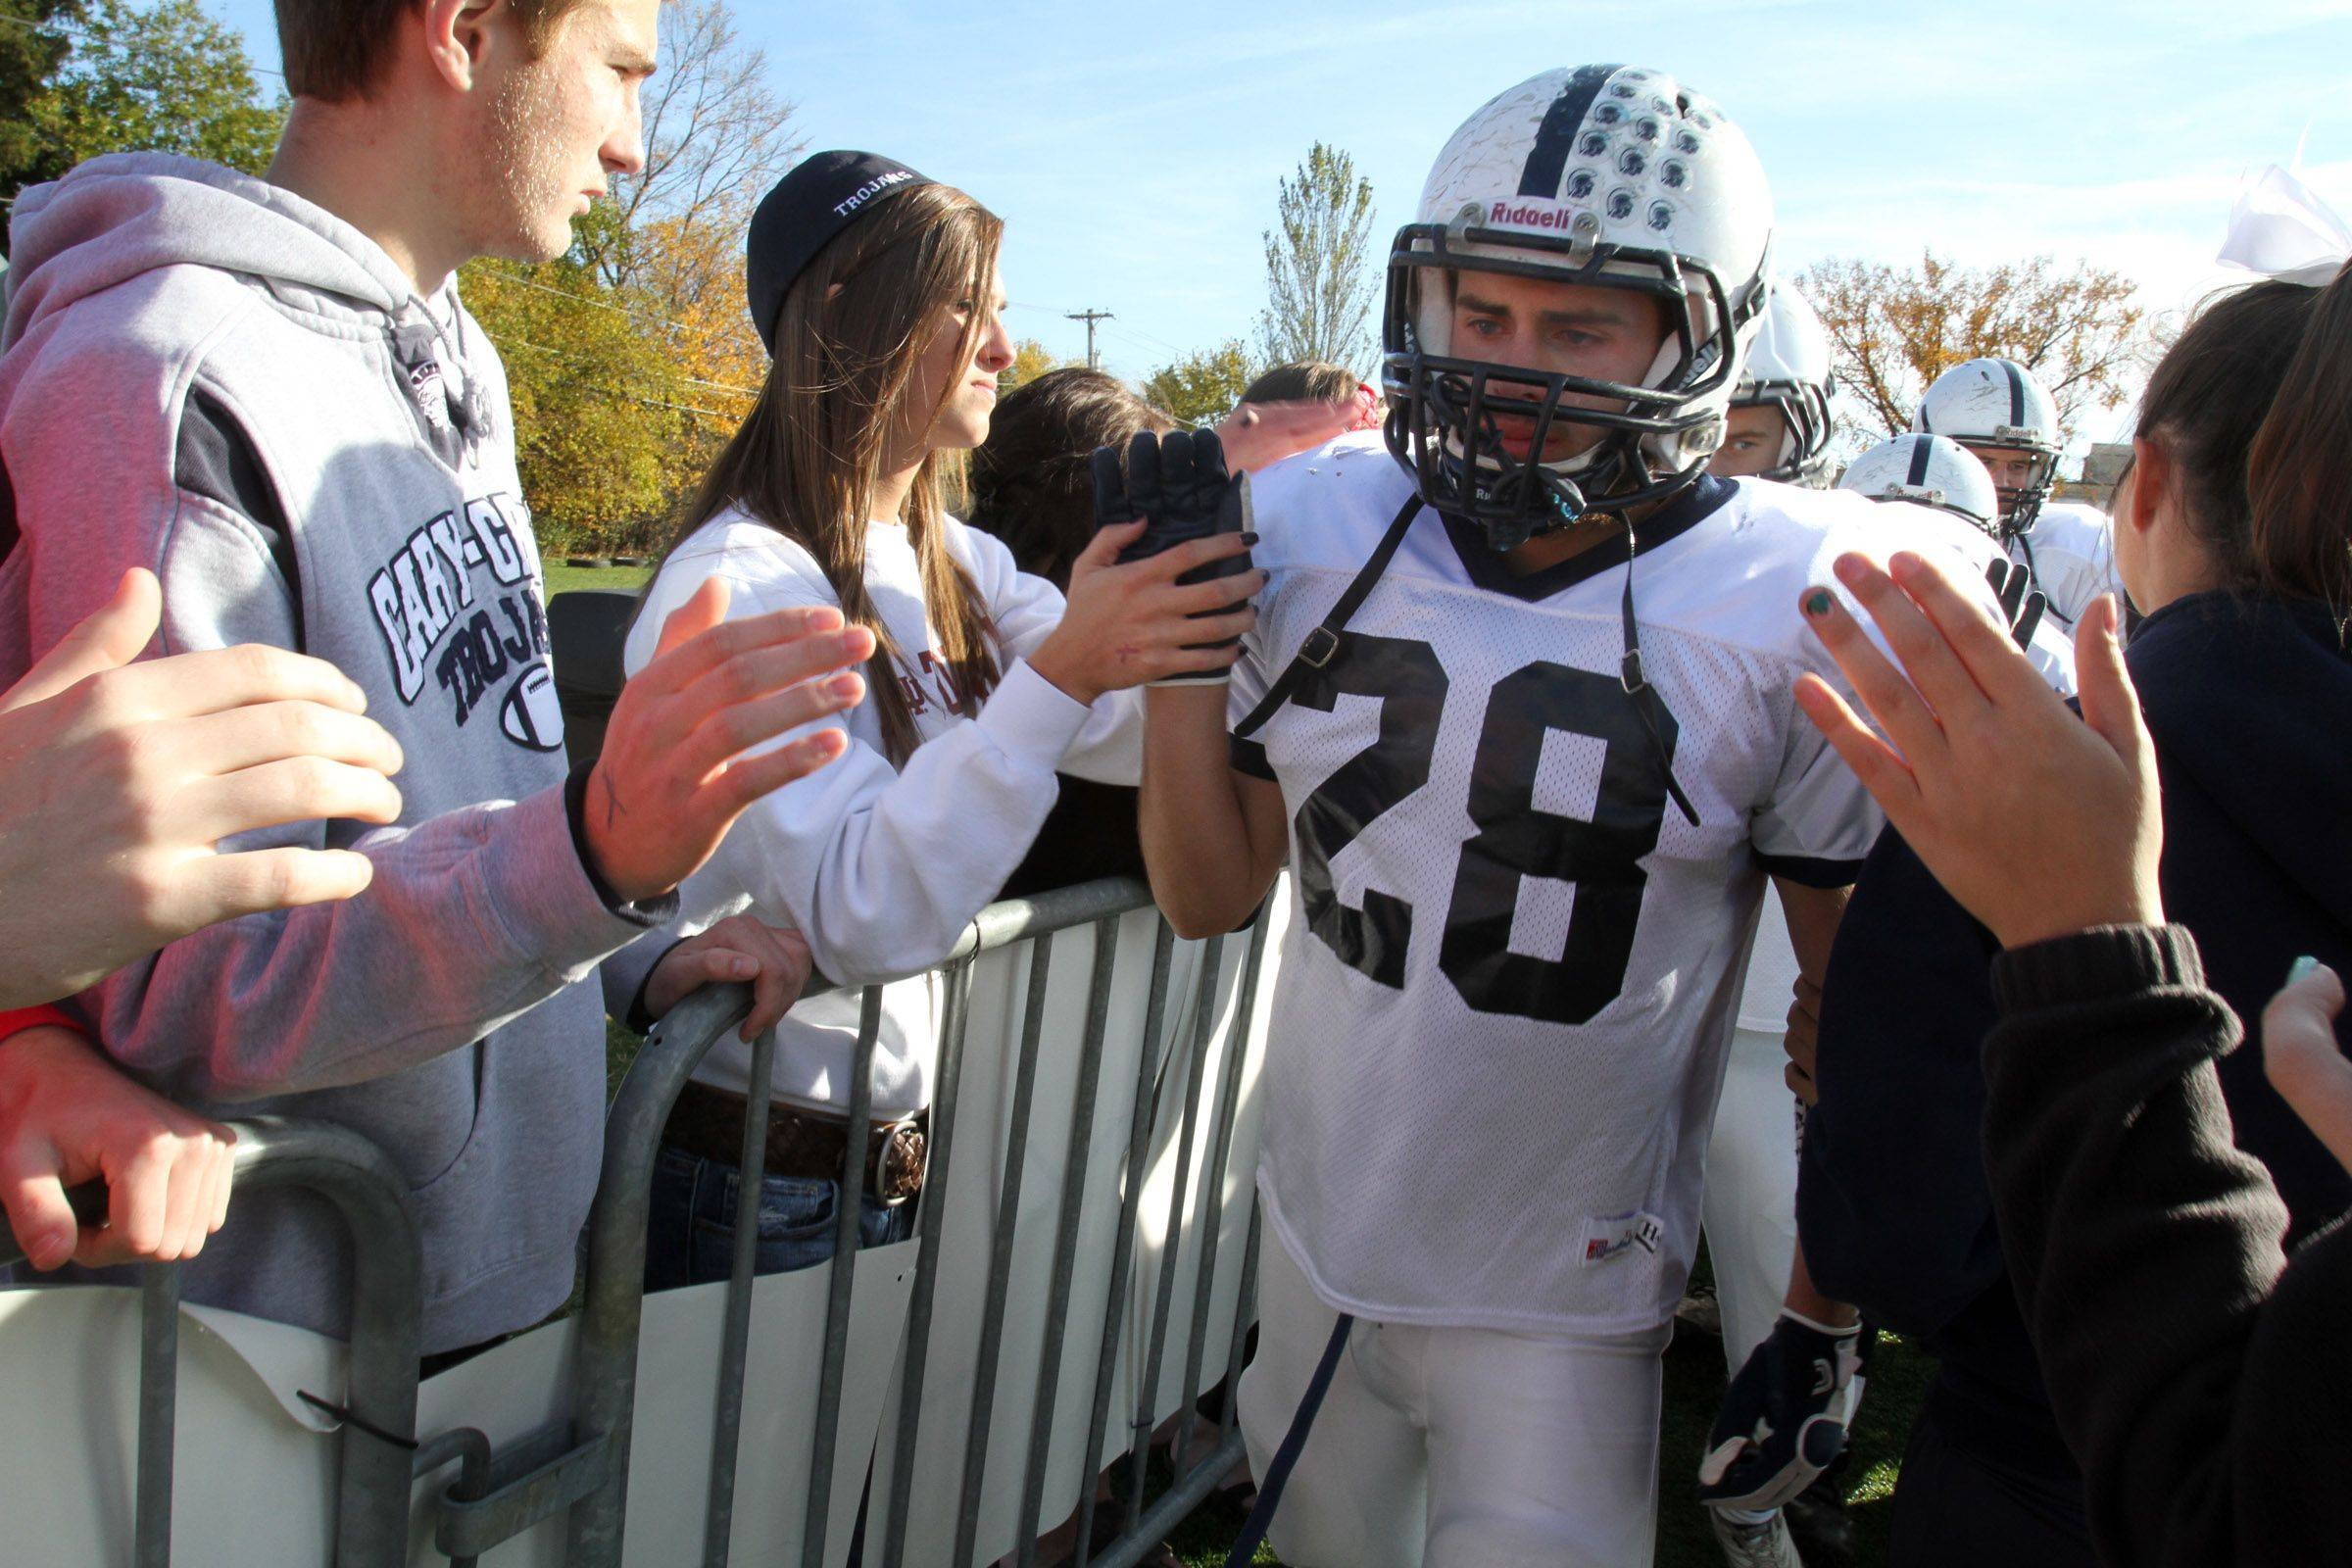 Cary-Grove running-back Connor Carlson gets a hand from fans after gthe Trojans' loss to Nazareth Academy on Saturday, November 5th.